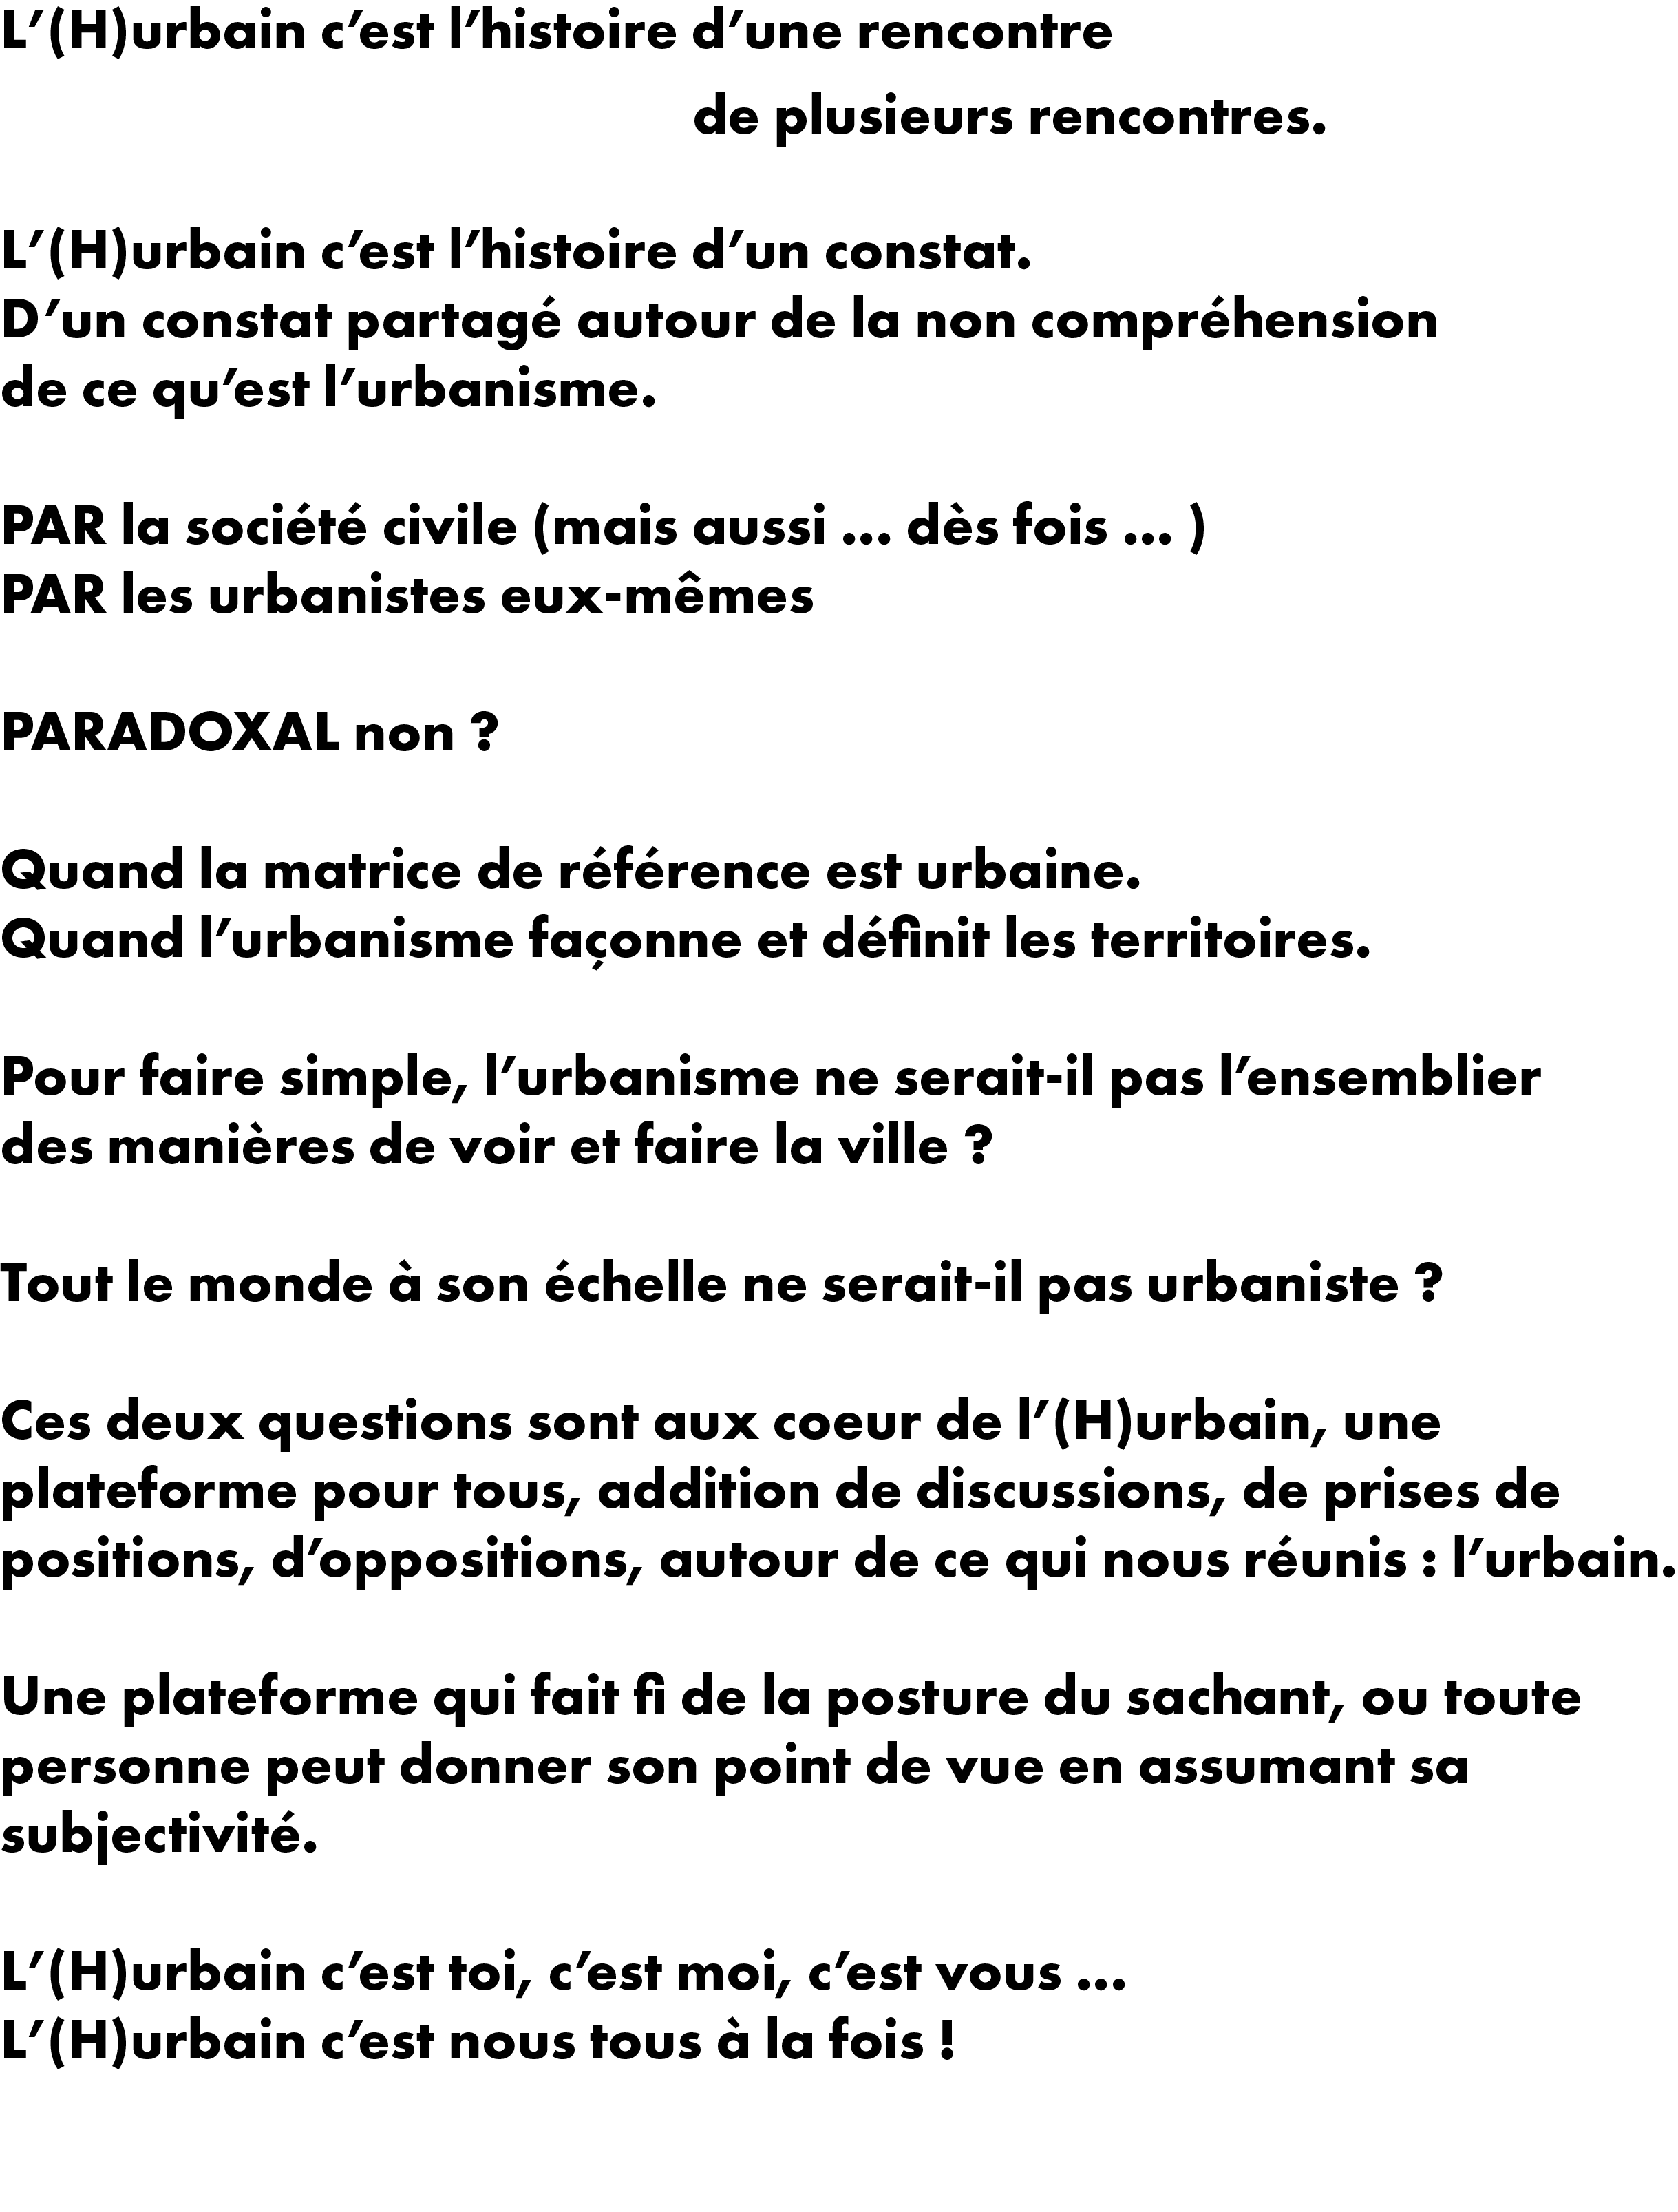 A propos lhurbain - texte.png